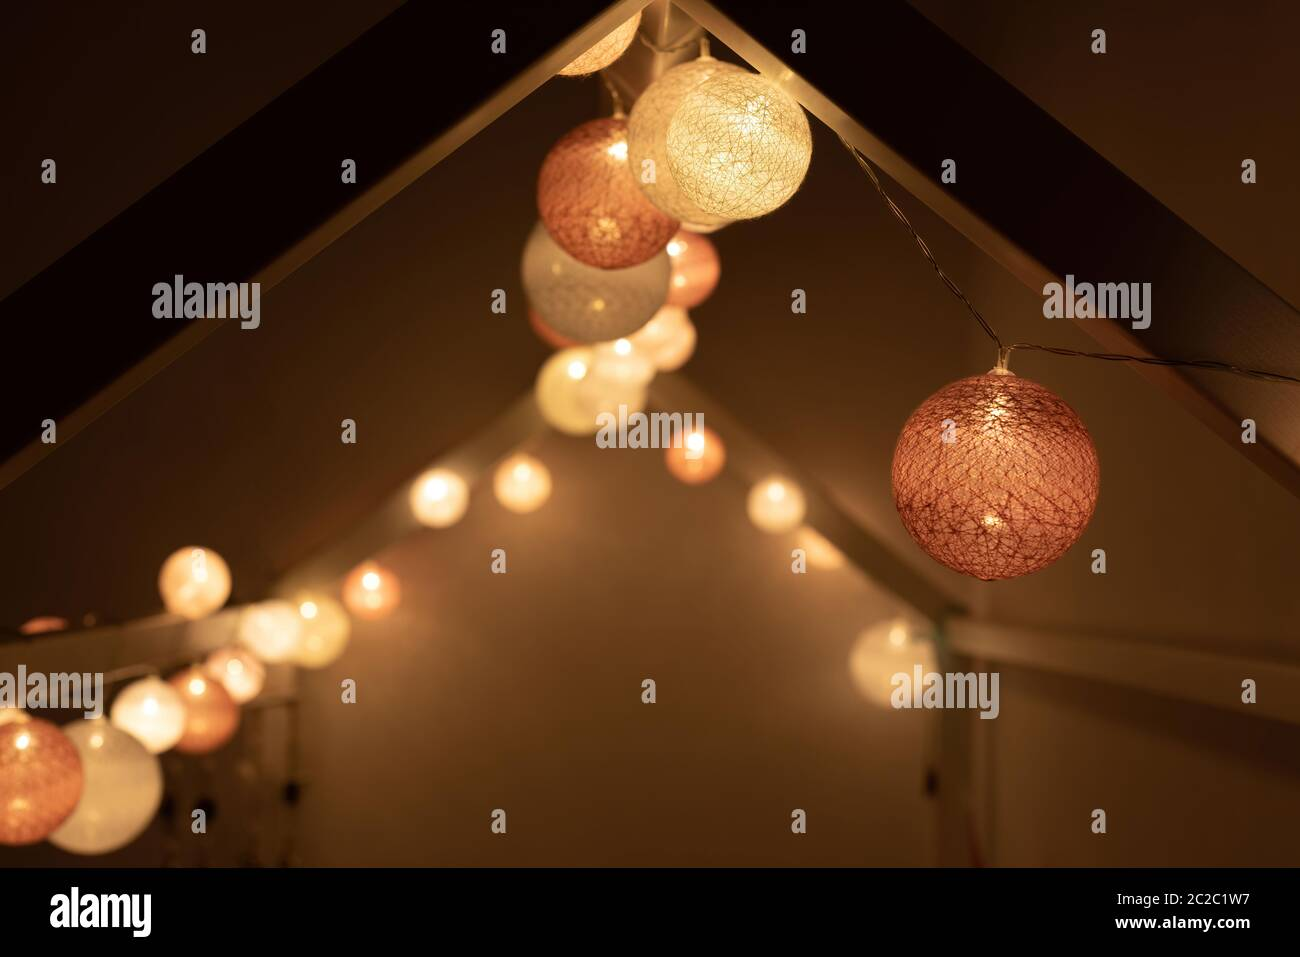 Roof Shaped Bed Canopy Decorated In Montessori Room With Bright Light Garland Illuminating Dark Bedroom In Evening At Home Stock Photo Alamy